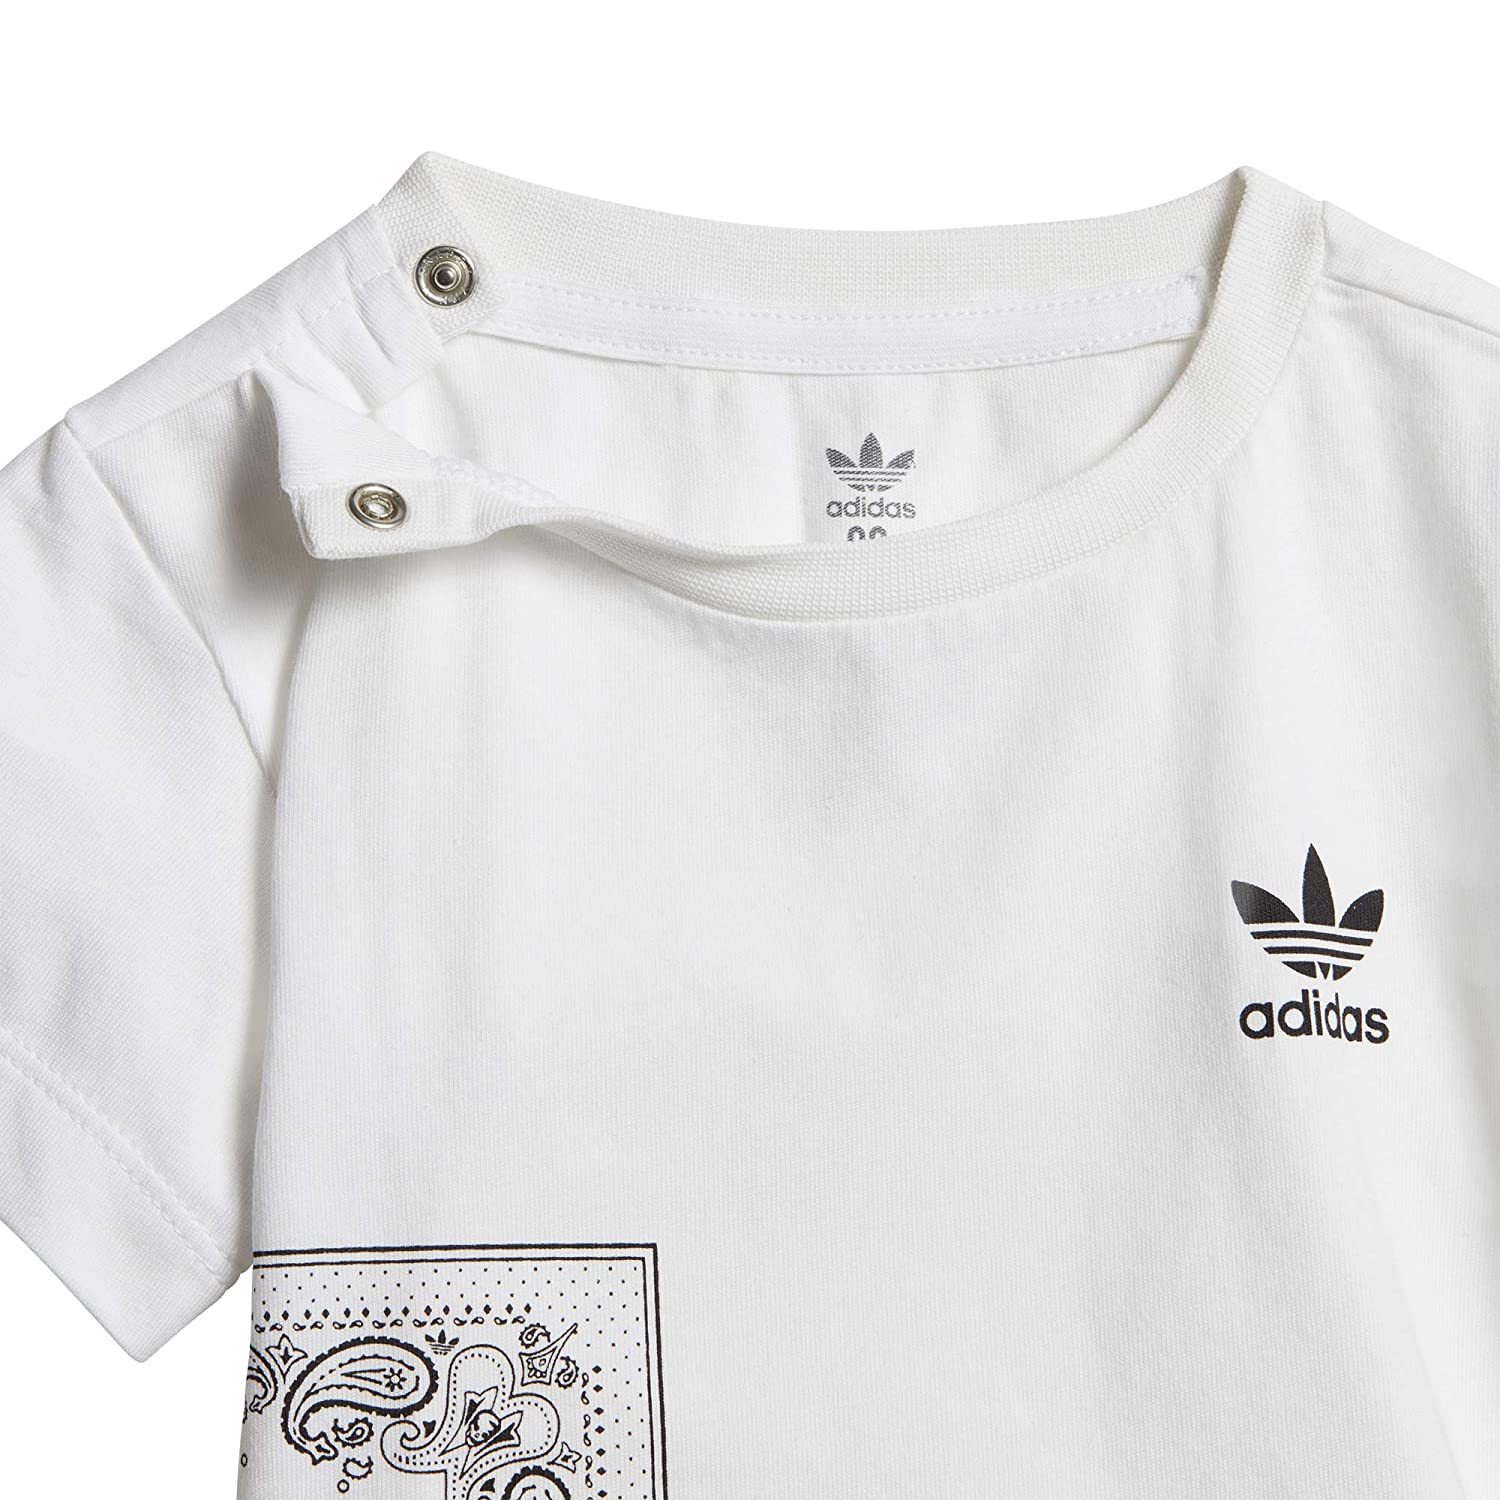 adidas Originals Bandana Tee Set 3 6 Mesi: Amazon.it: Sport